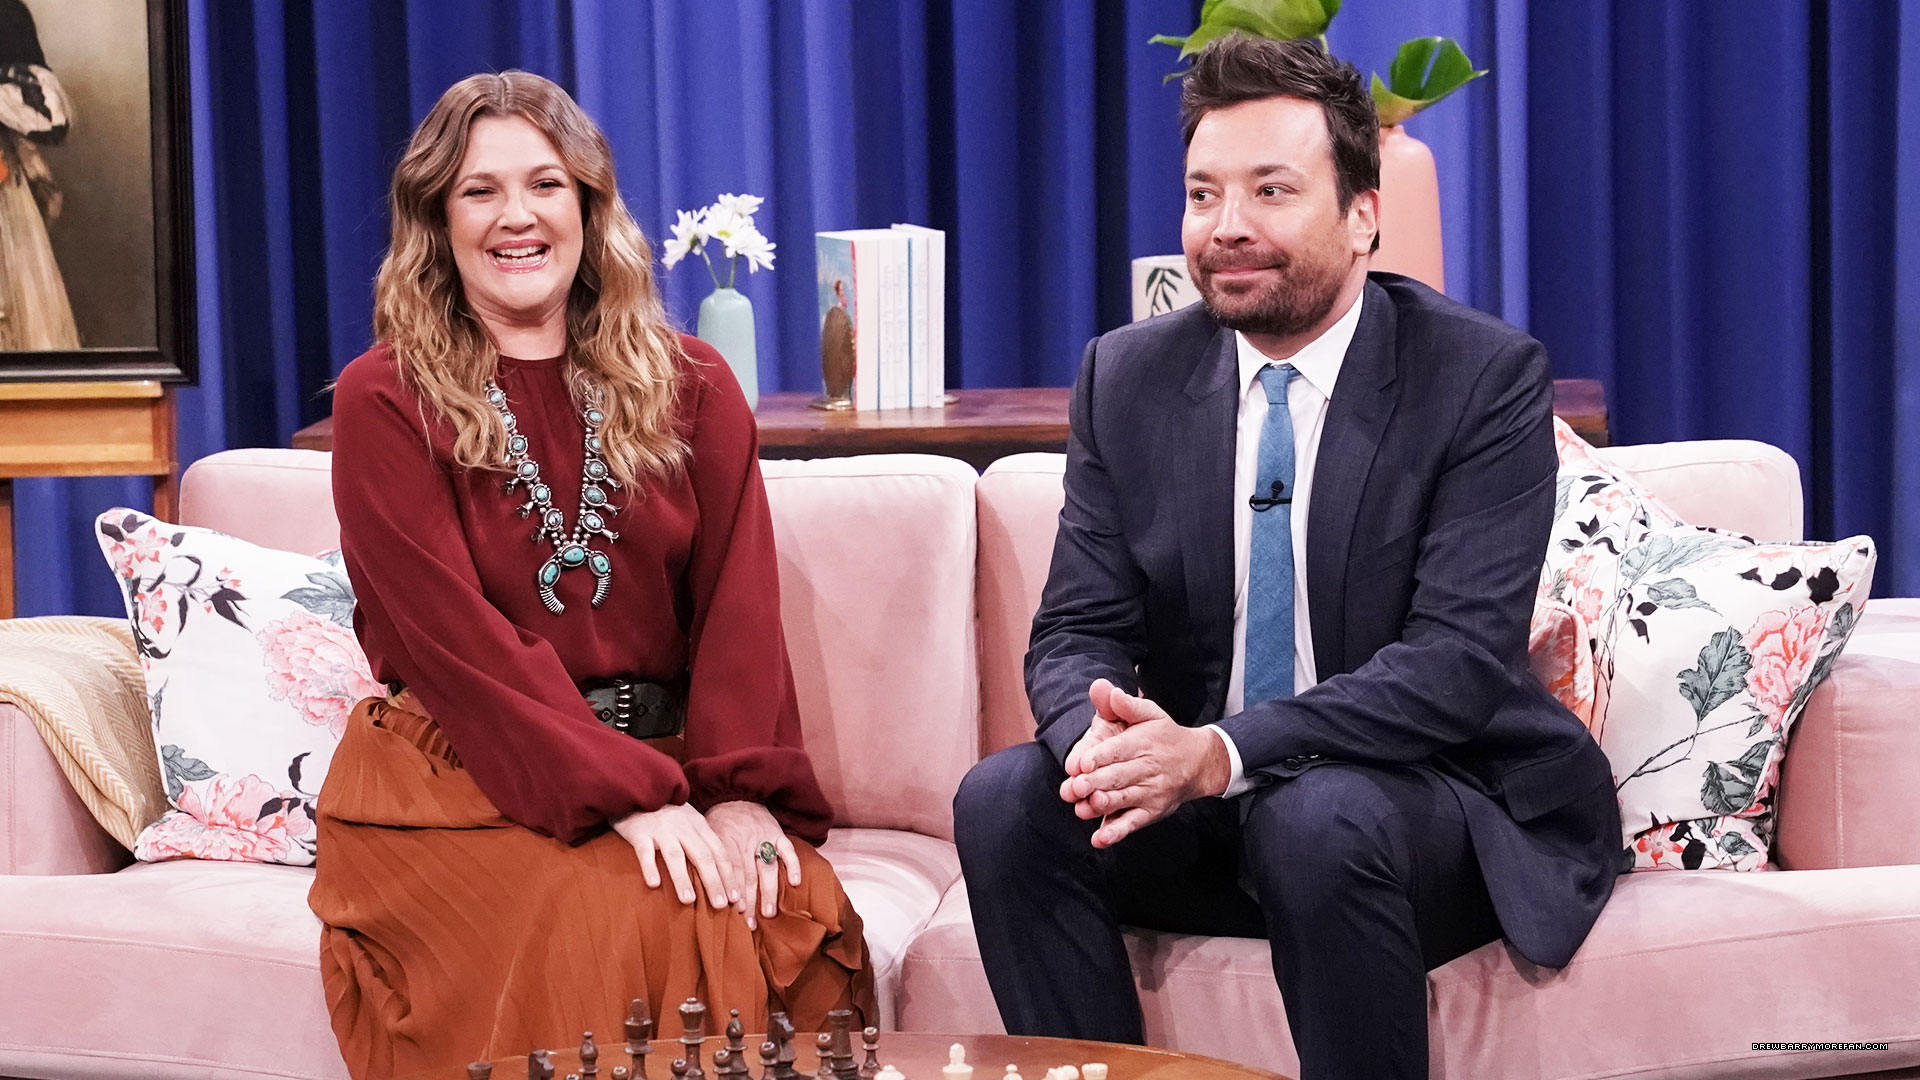 Press/Photos/Video: Drew on 'The Tonight Show with Jimmy Fallon'